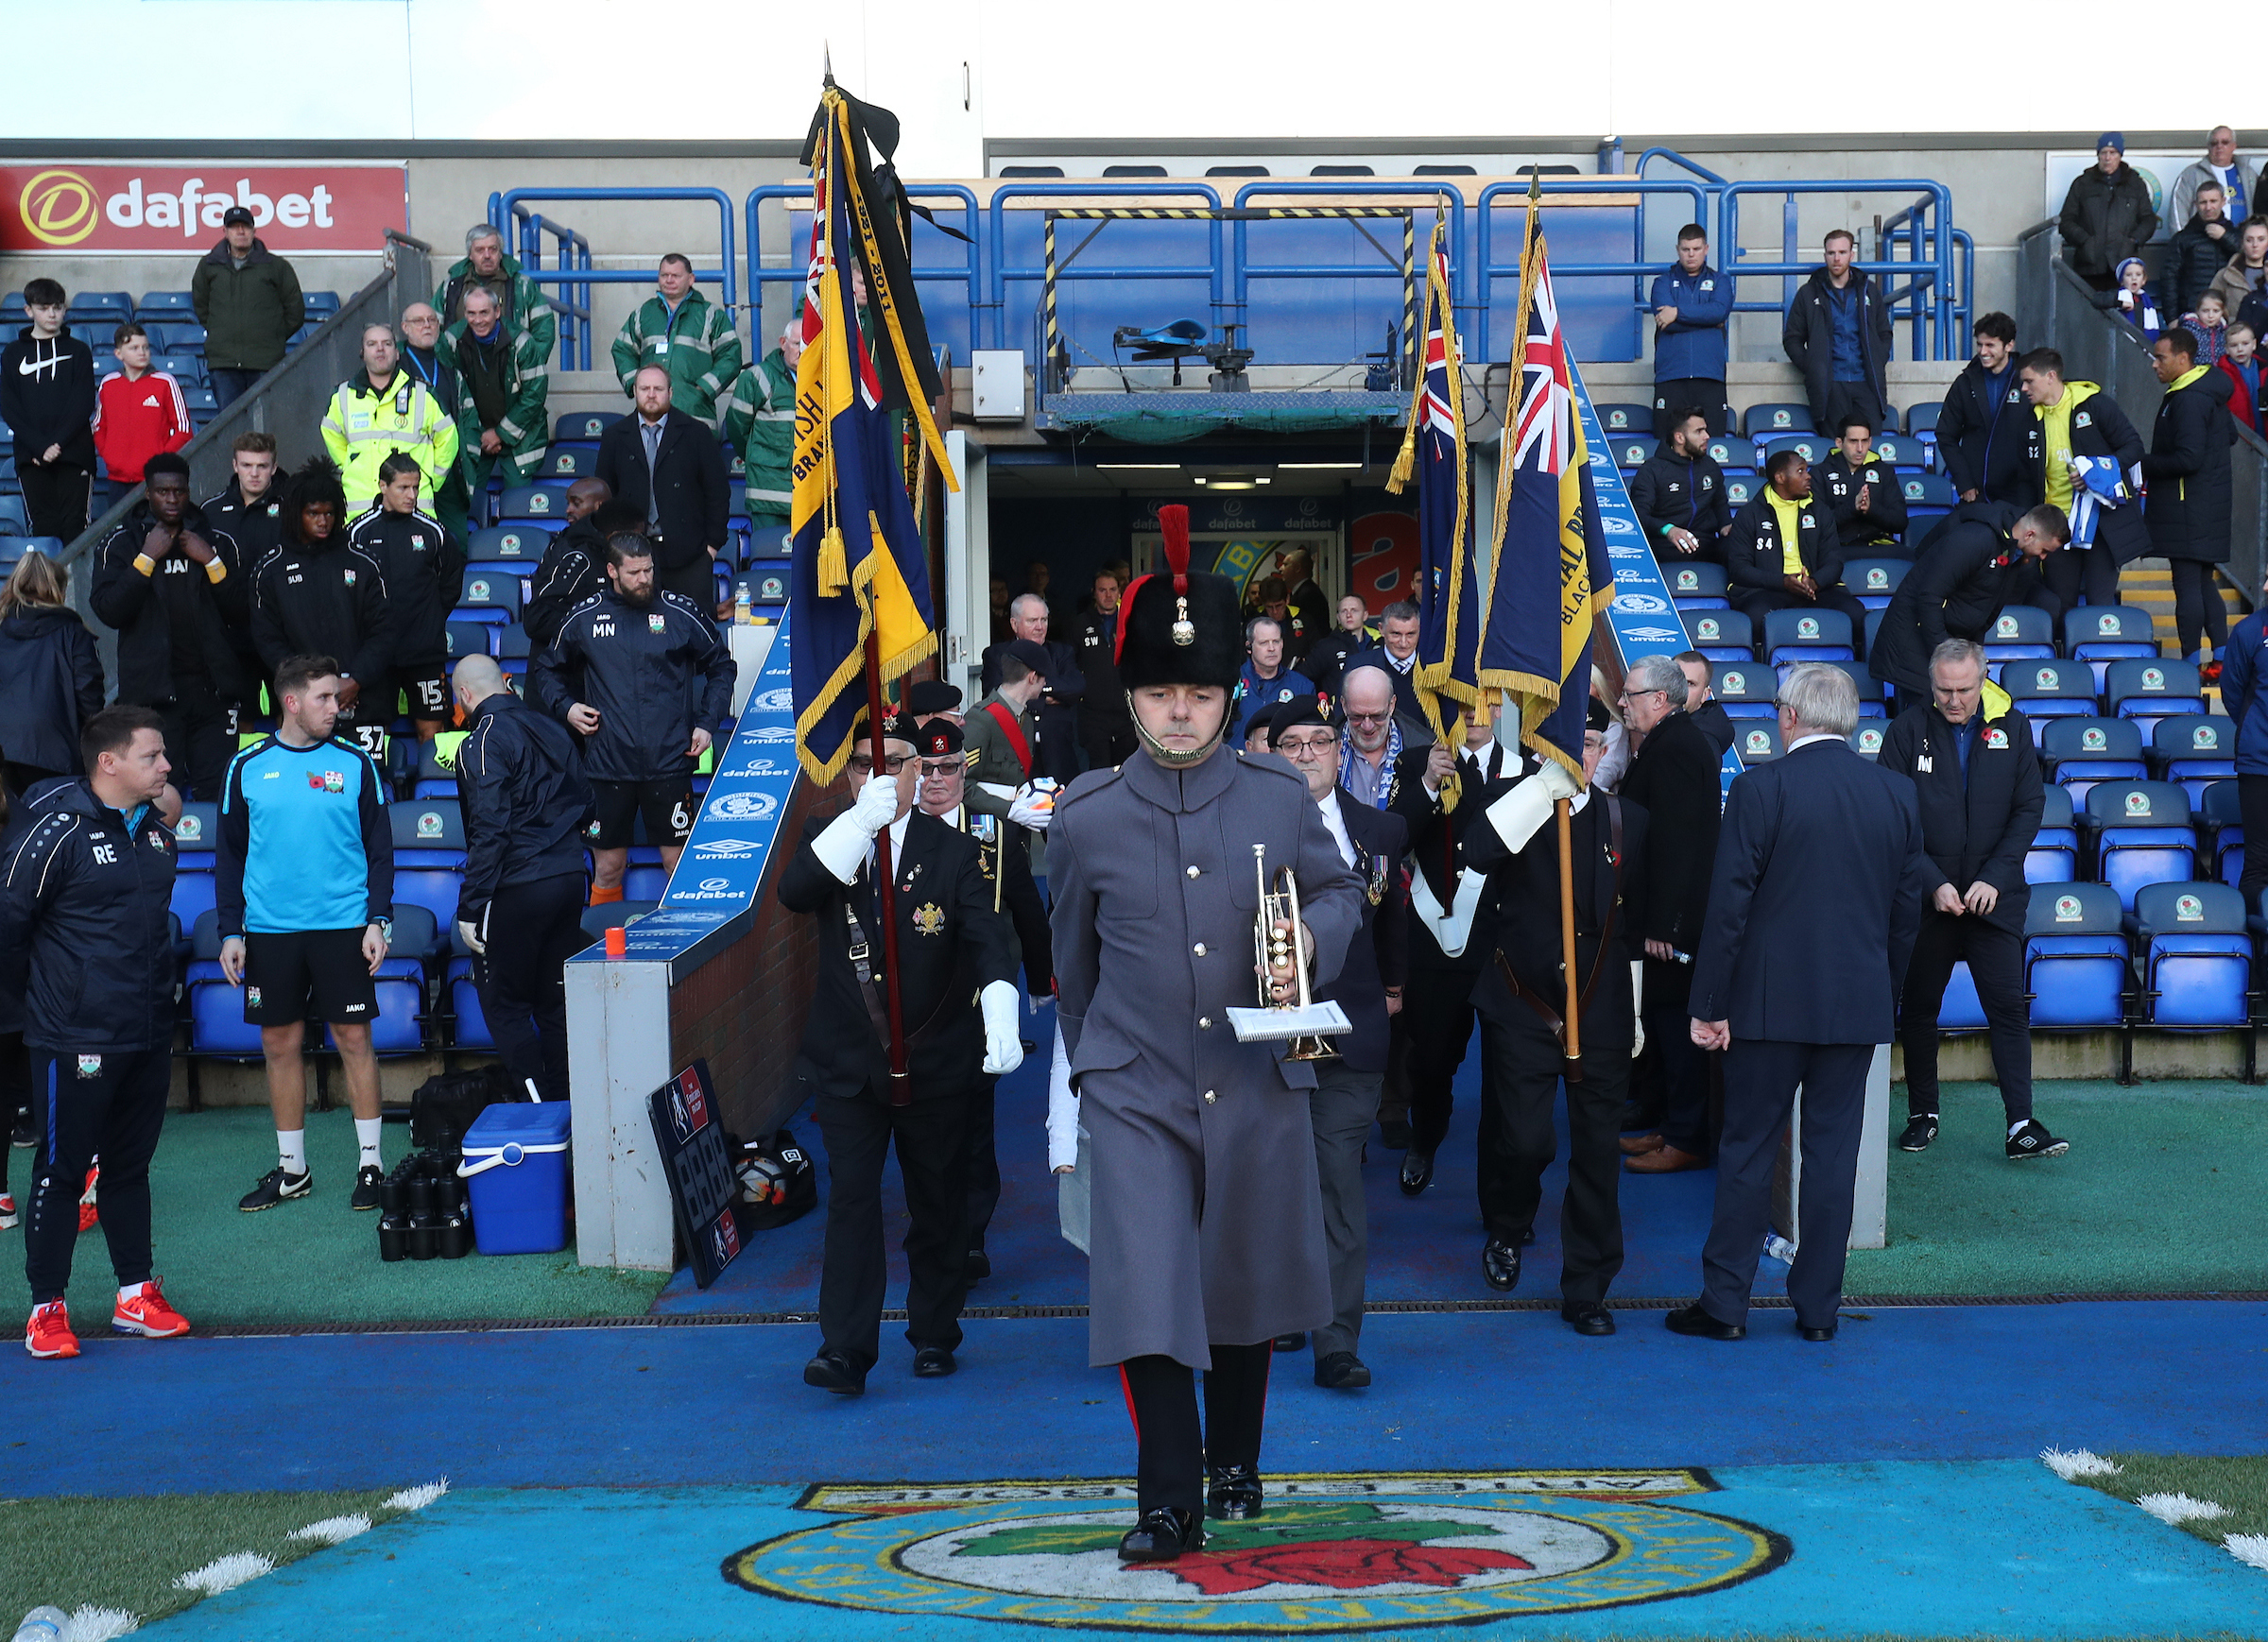 The Royal British Legion will be guests at Rovers' home match with Rotherham